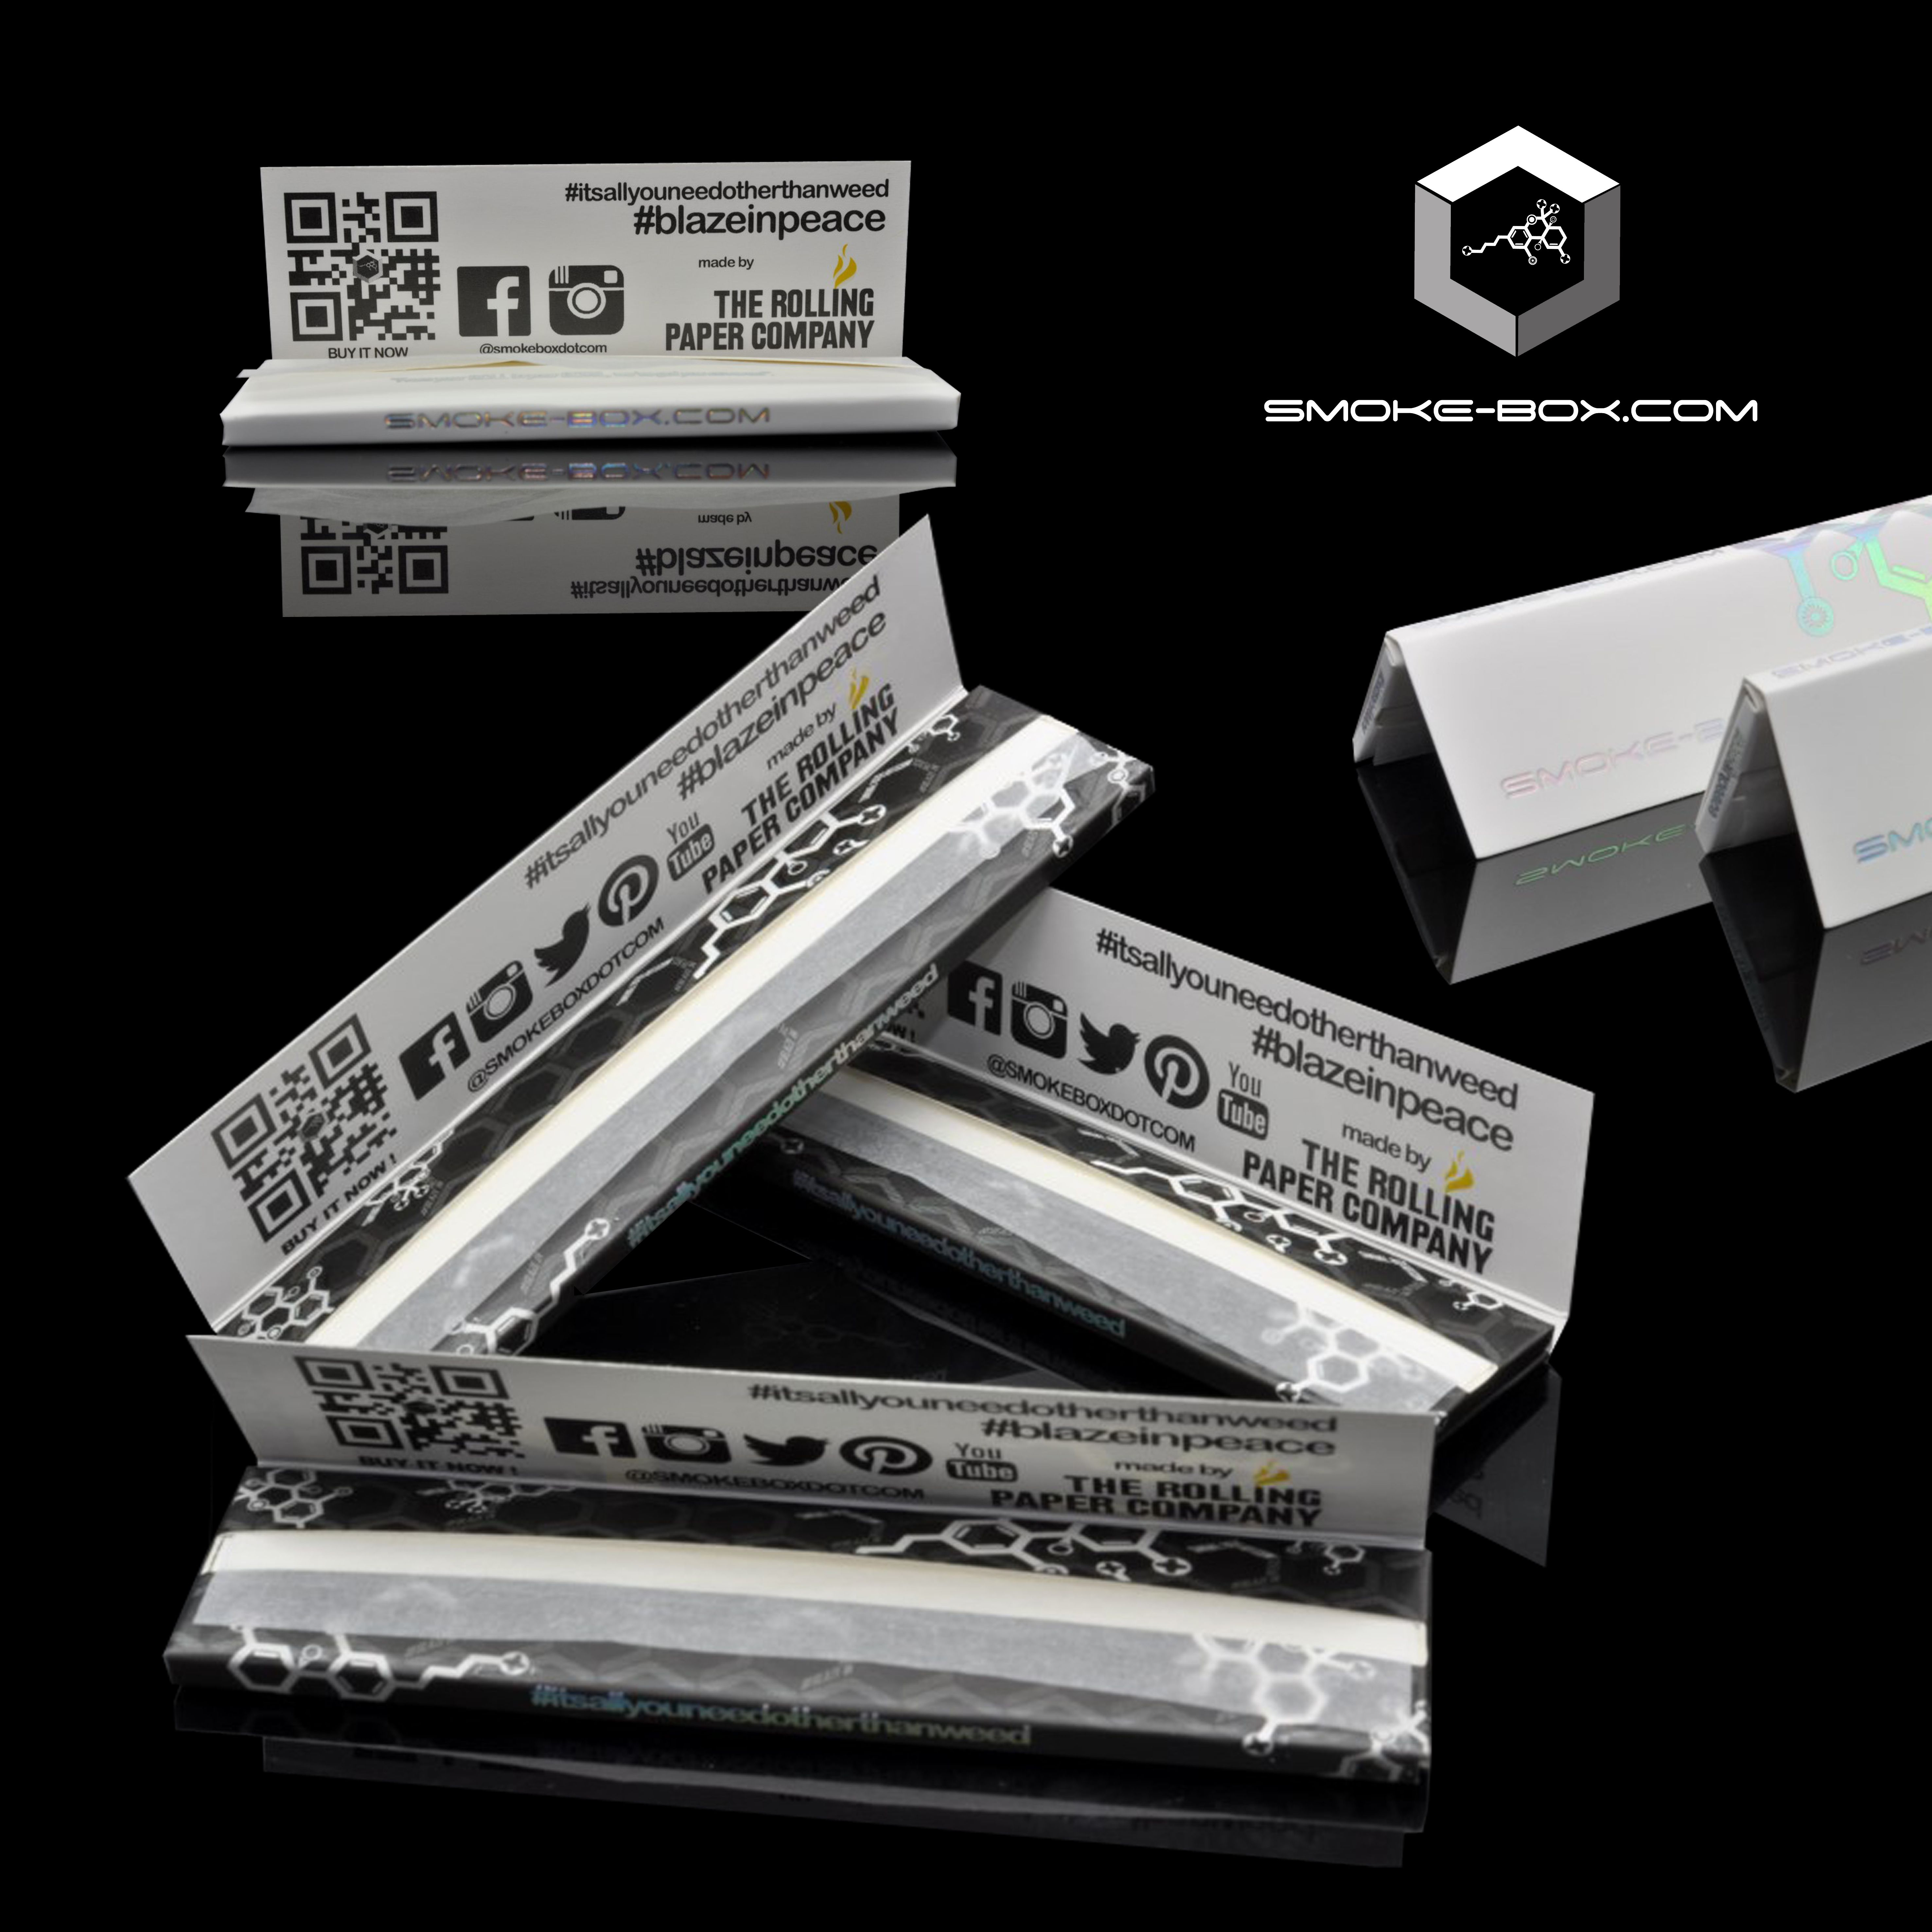 Can You Get High From Smoking Paper Our Partners At The Rolling Paper Company Have Made A Limited Edition Collaboration For The Smoke Box One 2 Sizes O Paper Companies Rolling Paper Rolled Paper